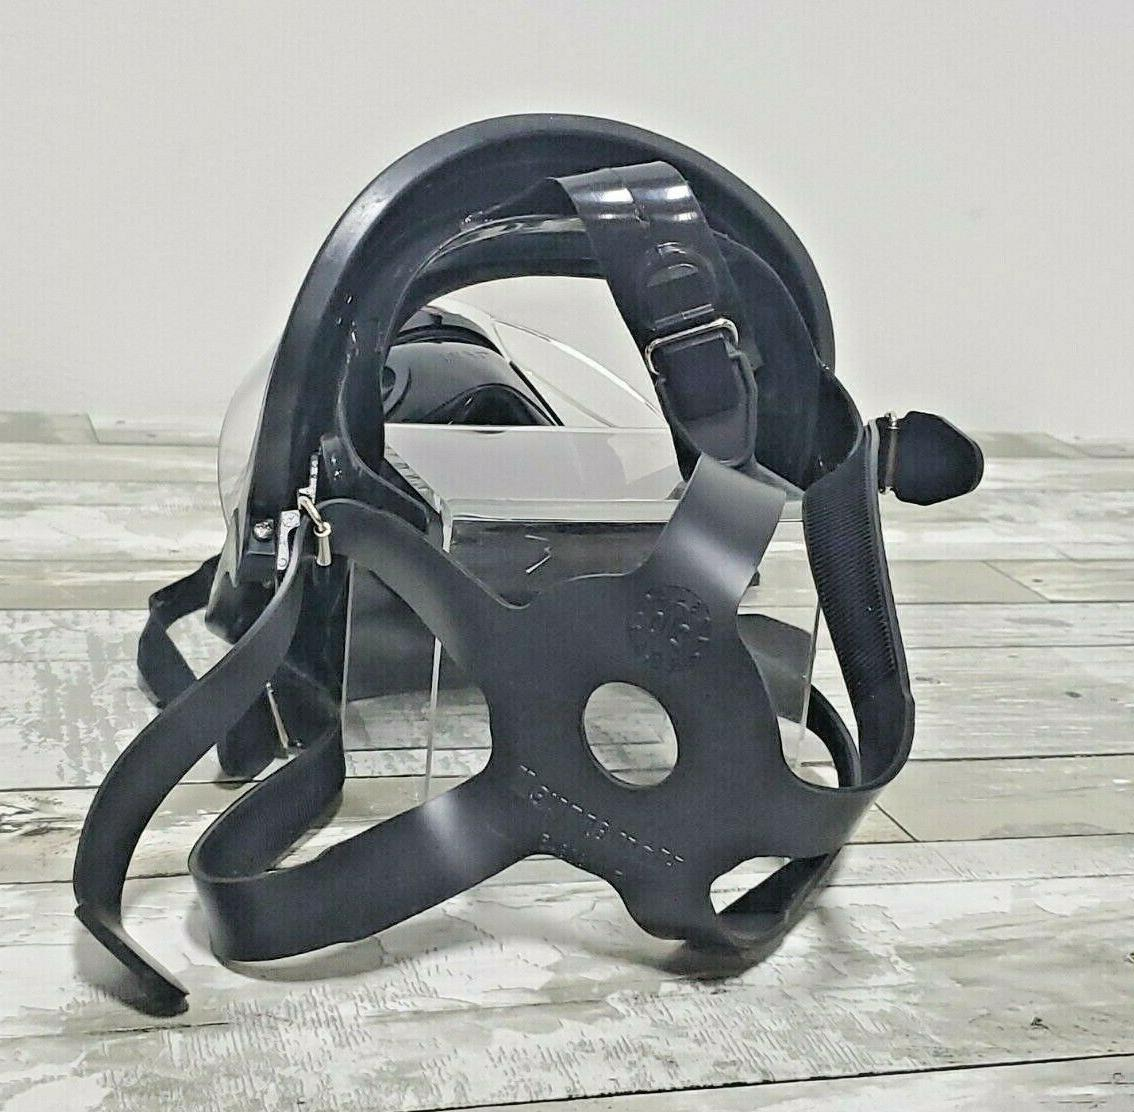 Honeywell Respirator - 76008A Small - Not Included